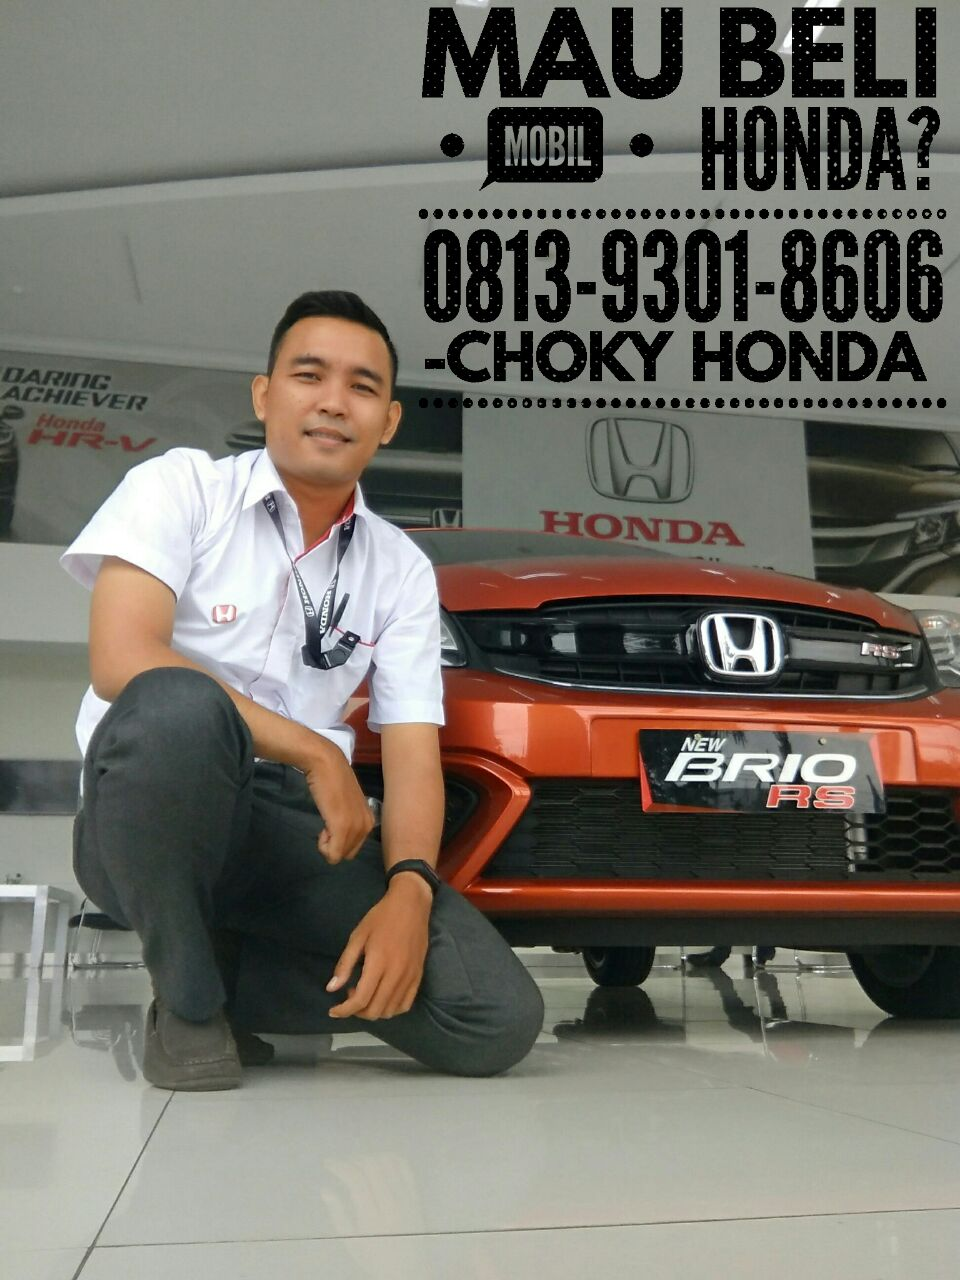 Sales Marketing Mobil Honda Choky